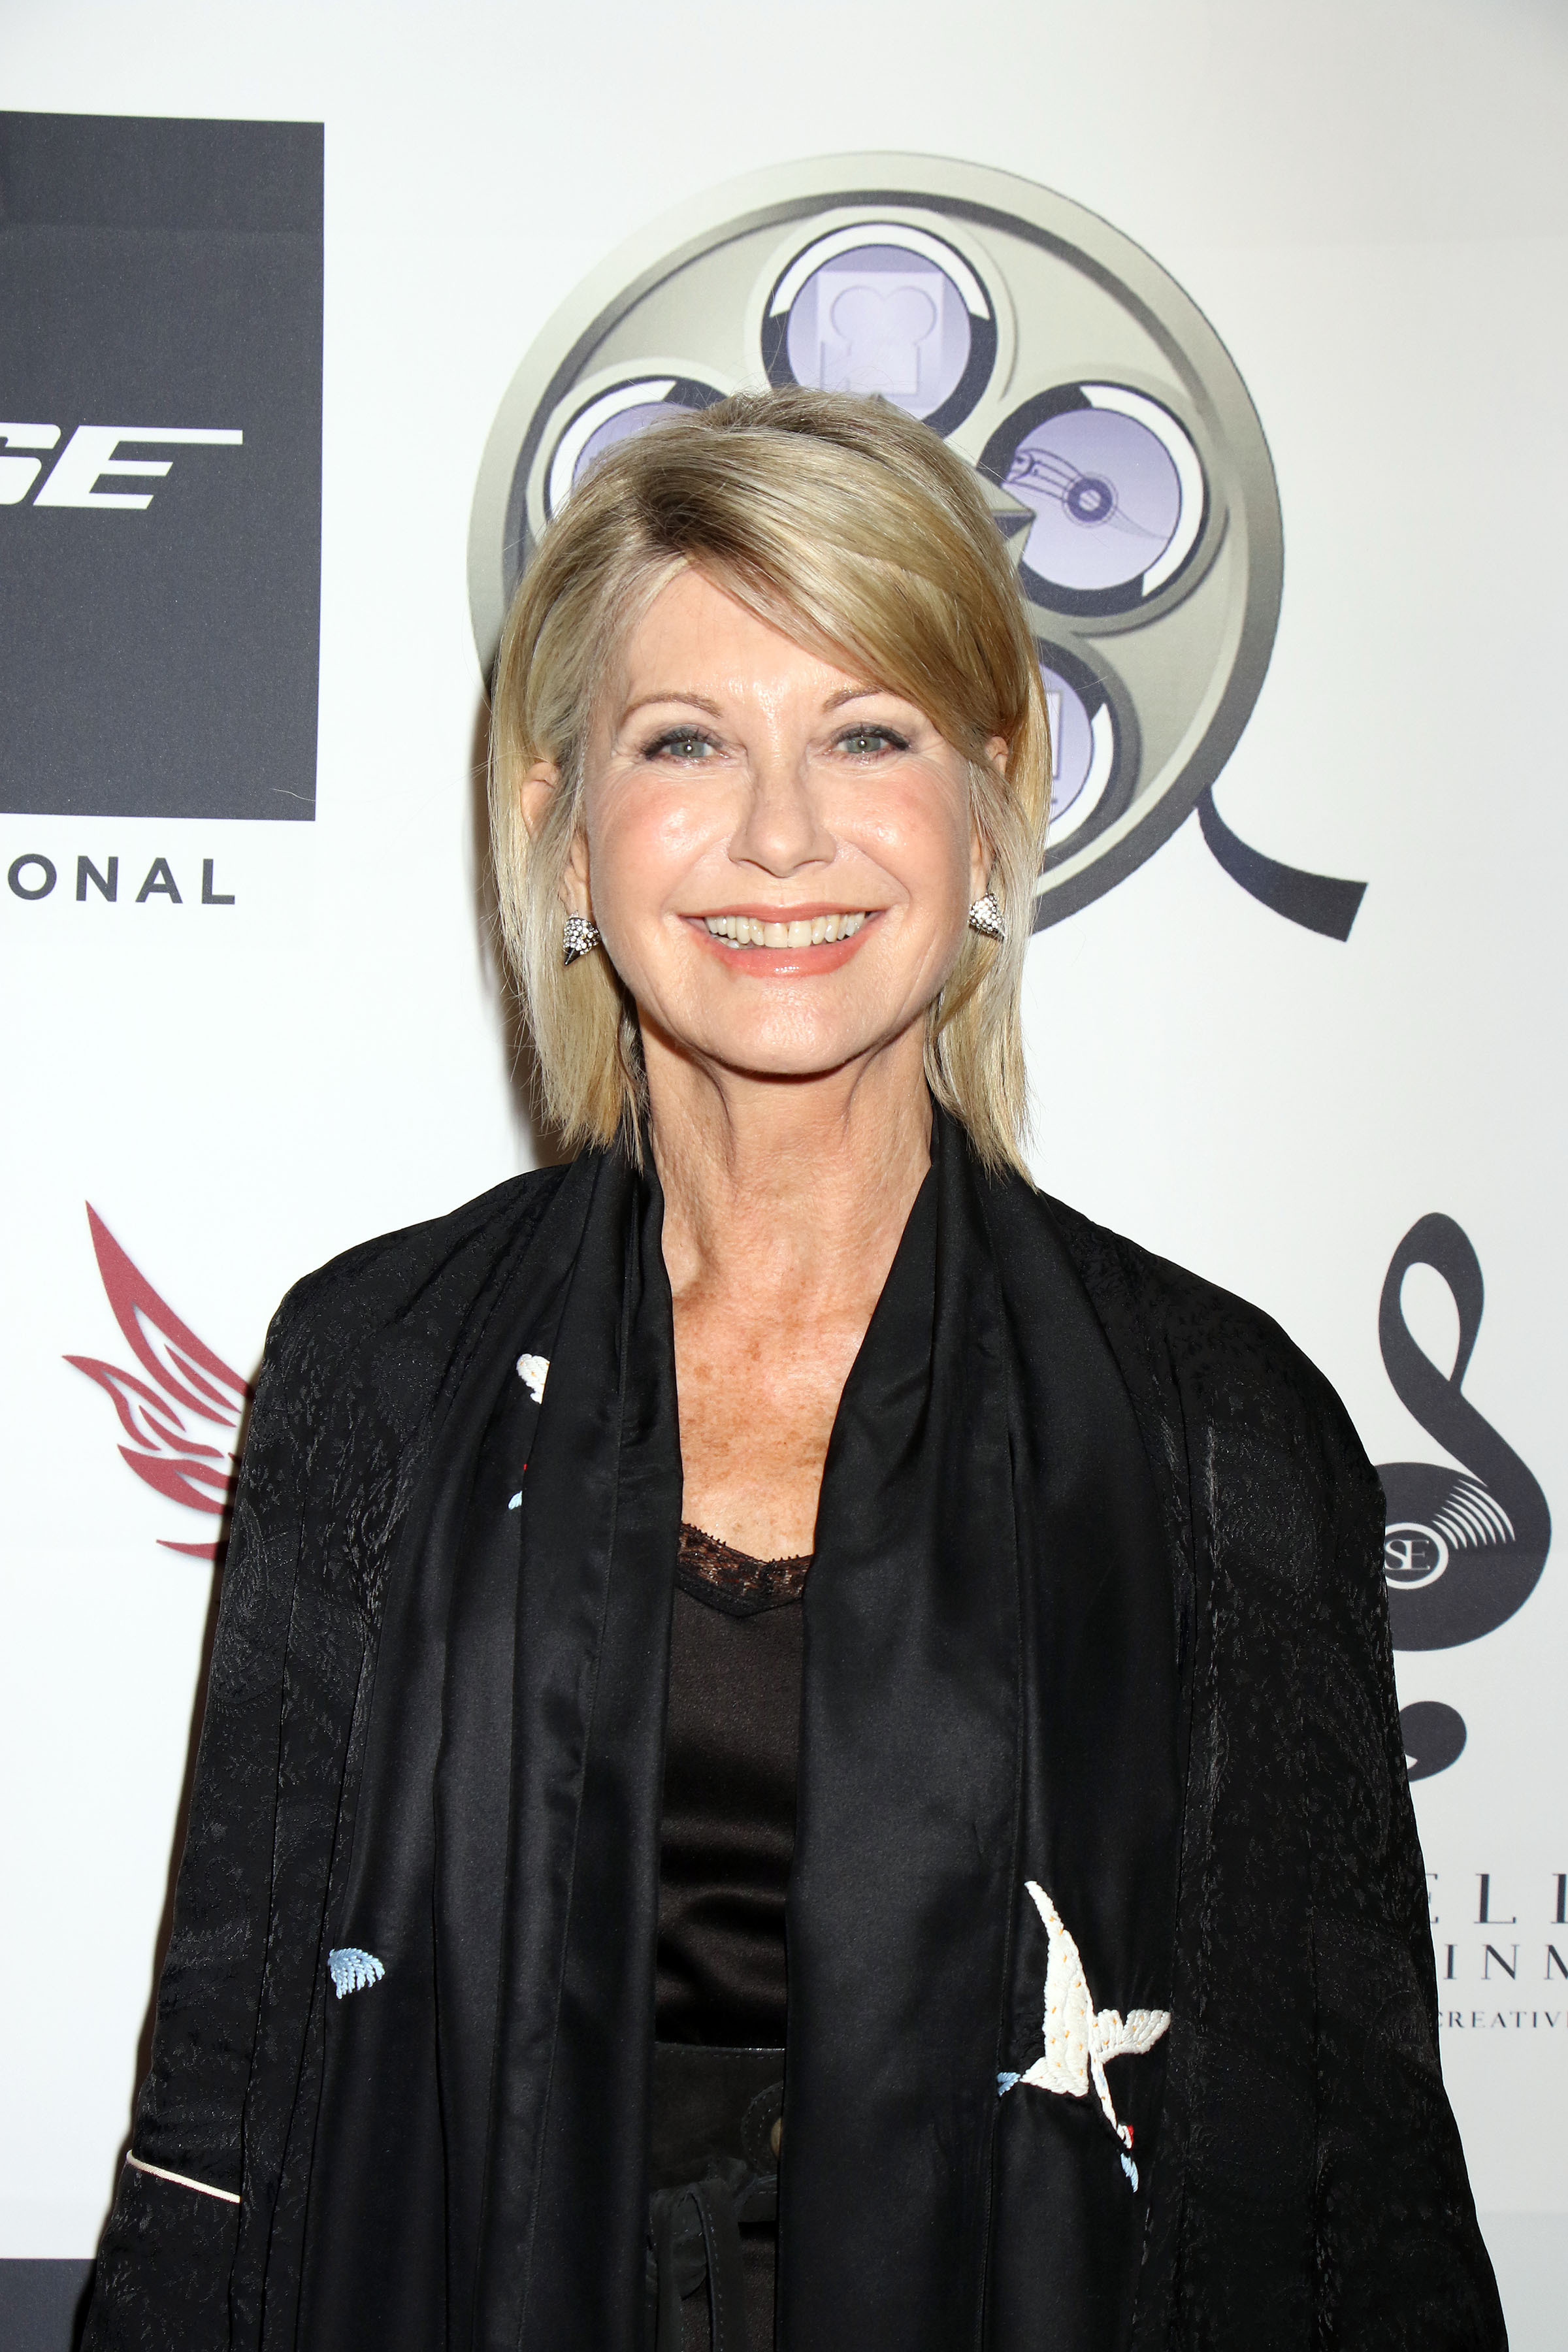 The Grease icon chose to keep her second diagnosis secret. Credit: PA Images